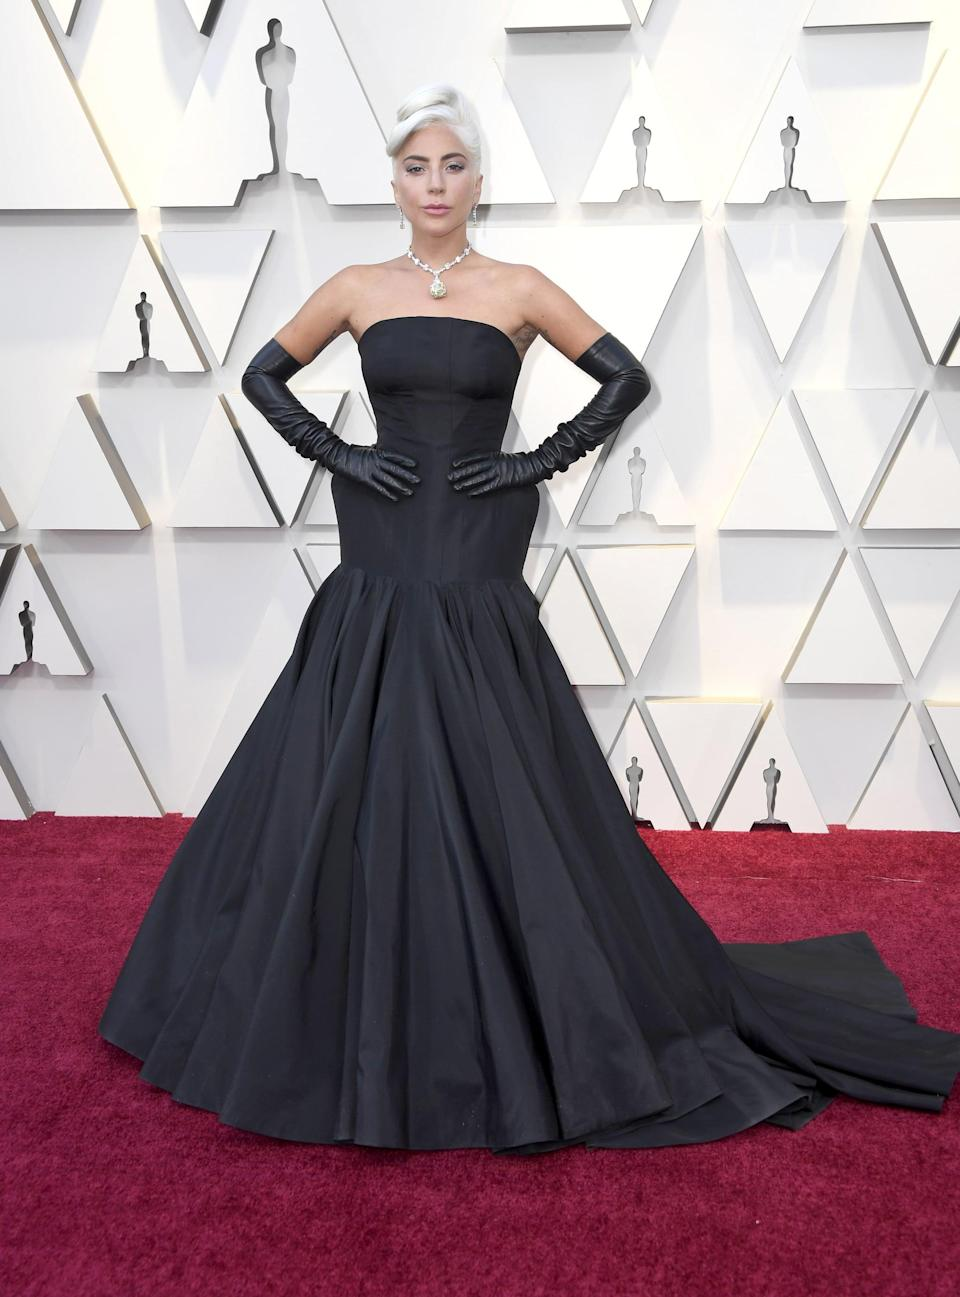 """<p>The <strong>A Star Is Born</strong> actress <a href=""""https://www.popsugar.com/fashion/Lady-Gaga-Dress-2019-Oscars-45832034"""" class=""""link rapid-noclick-resp"""" rel=""""nofollow noopener"""" target=""""_blank"""" data-ylk=""""slk:attended the 2019 Oscars wearing a black strapless Alexander McQueen gown"""">attended the 2019 Oscars wearing a black strapless Alexander McQueen gown</a>, complete with glam gloves.</p>"""